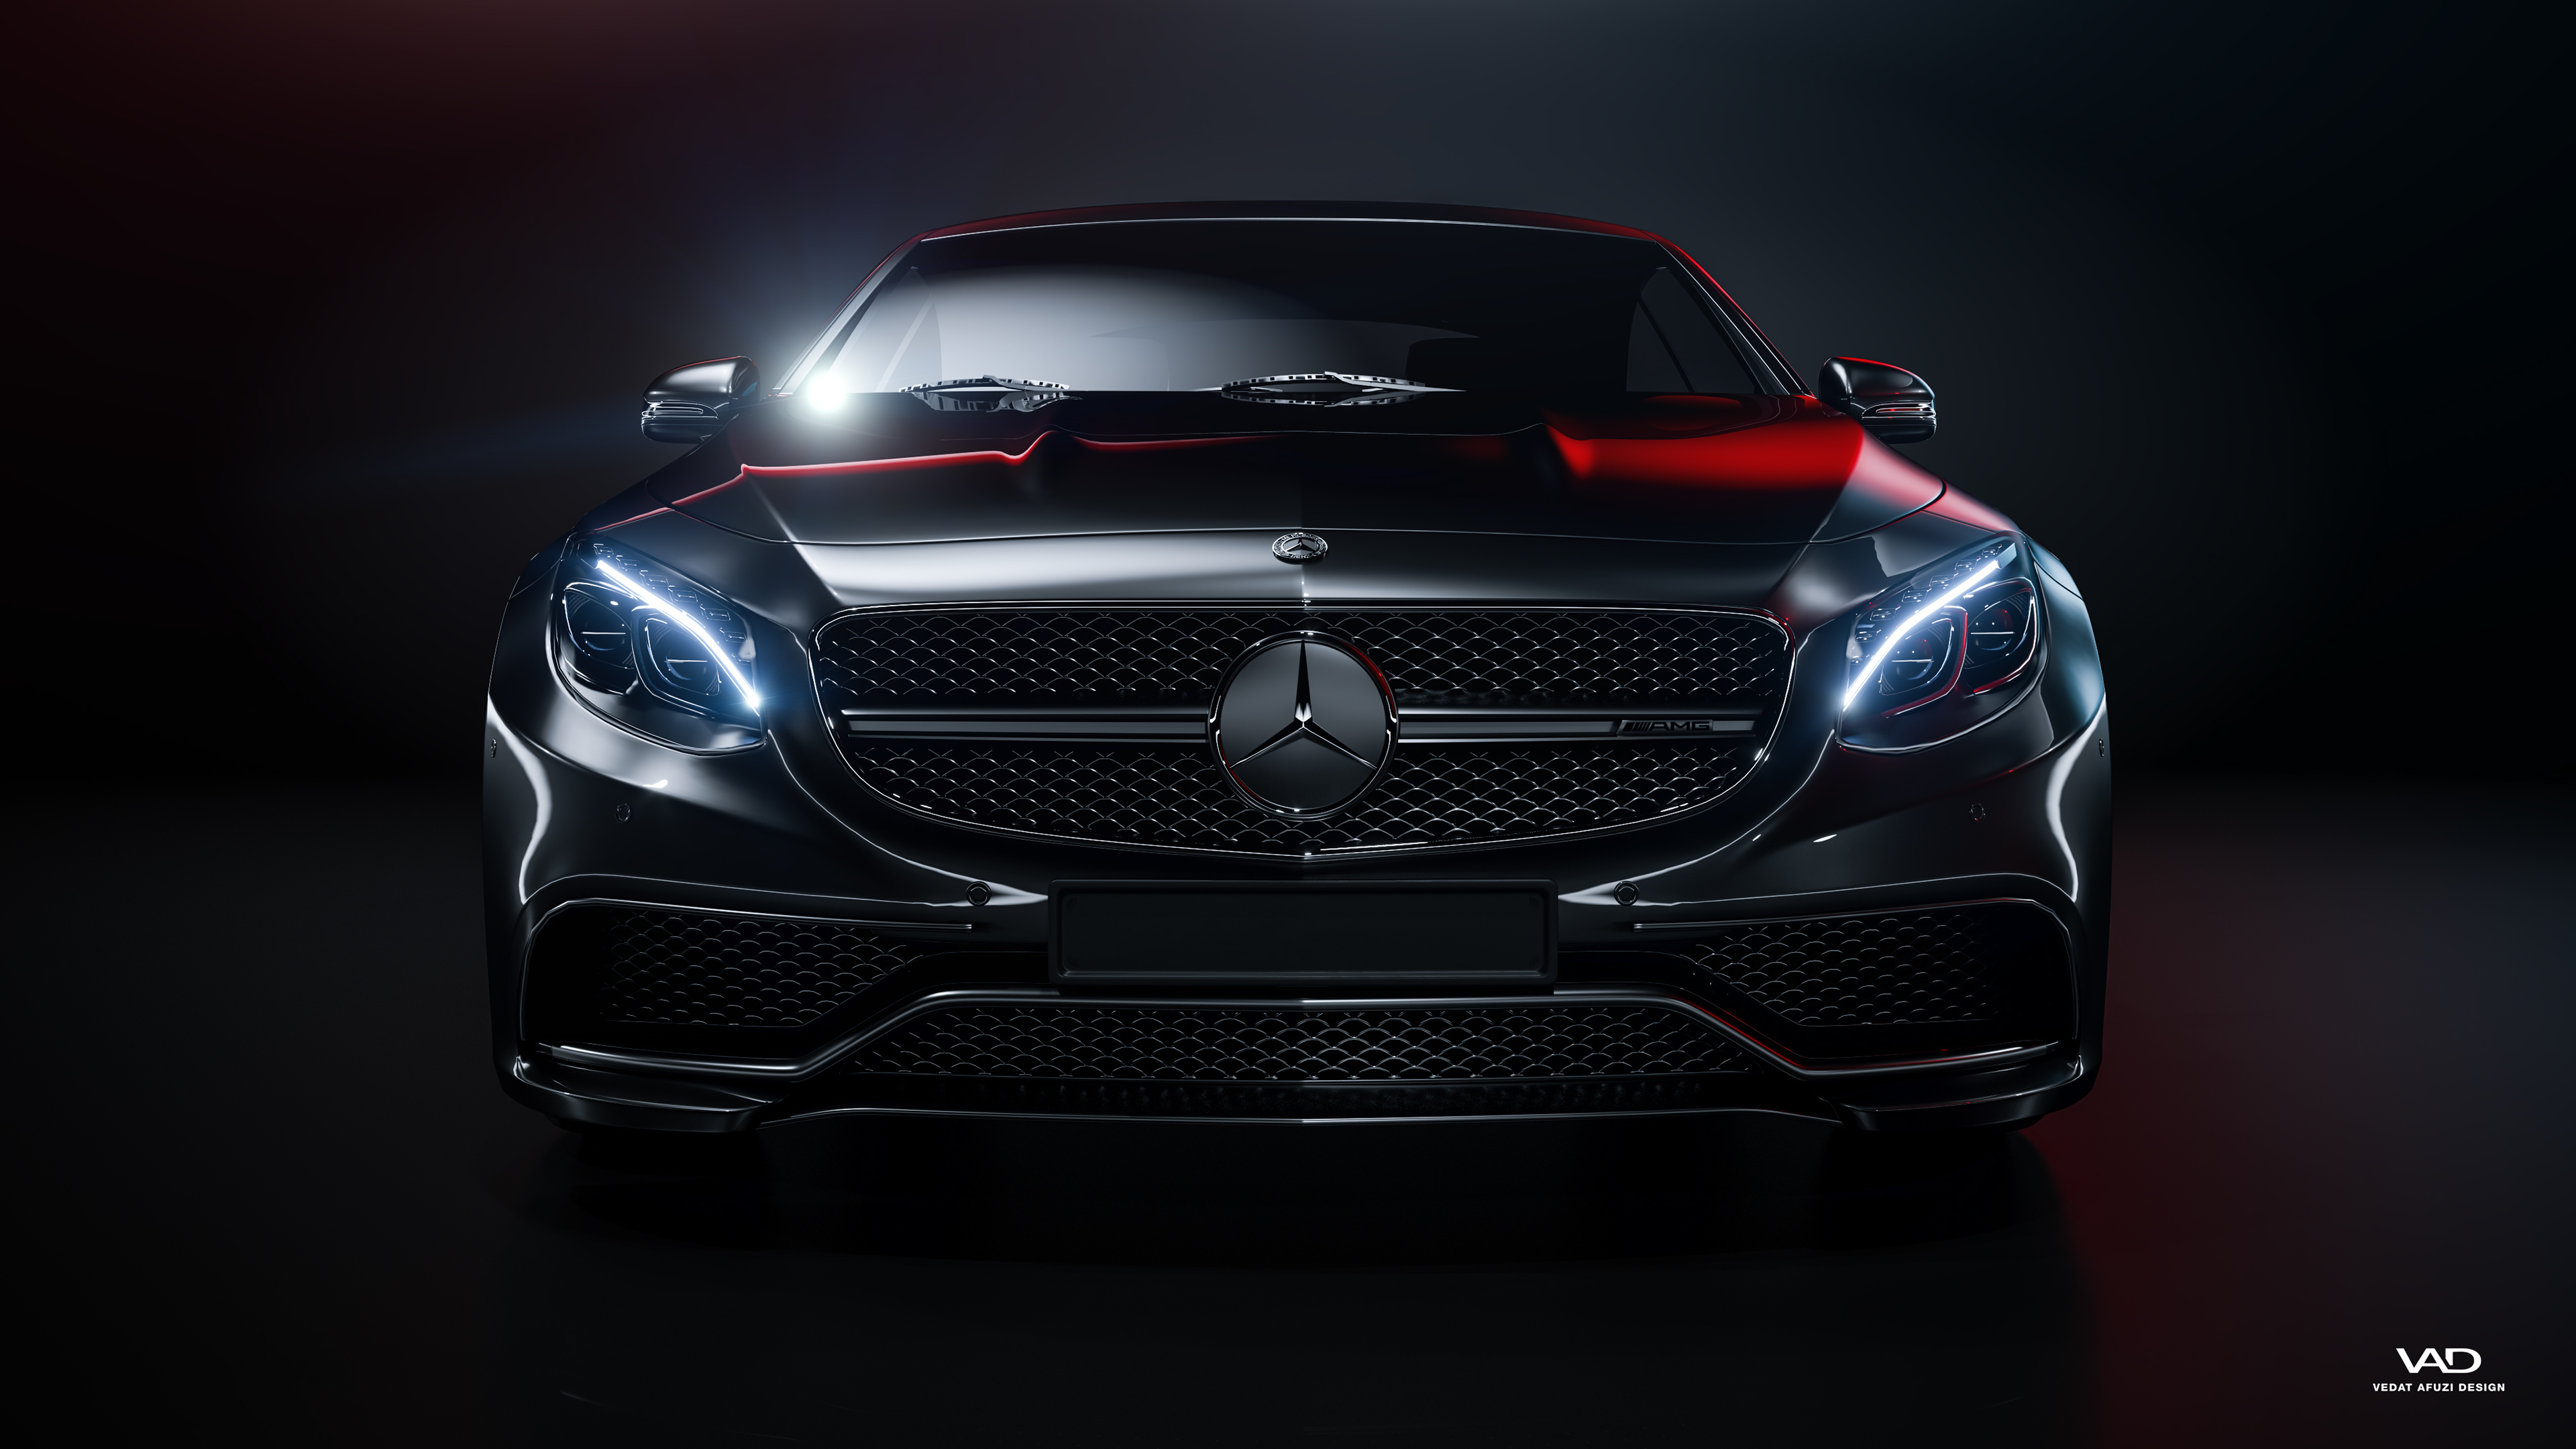 Mercedes Benz S 63 Amg 4k Wallpaper Hd Car Wallpapers